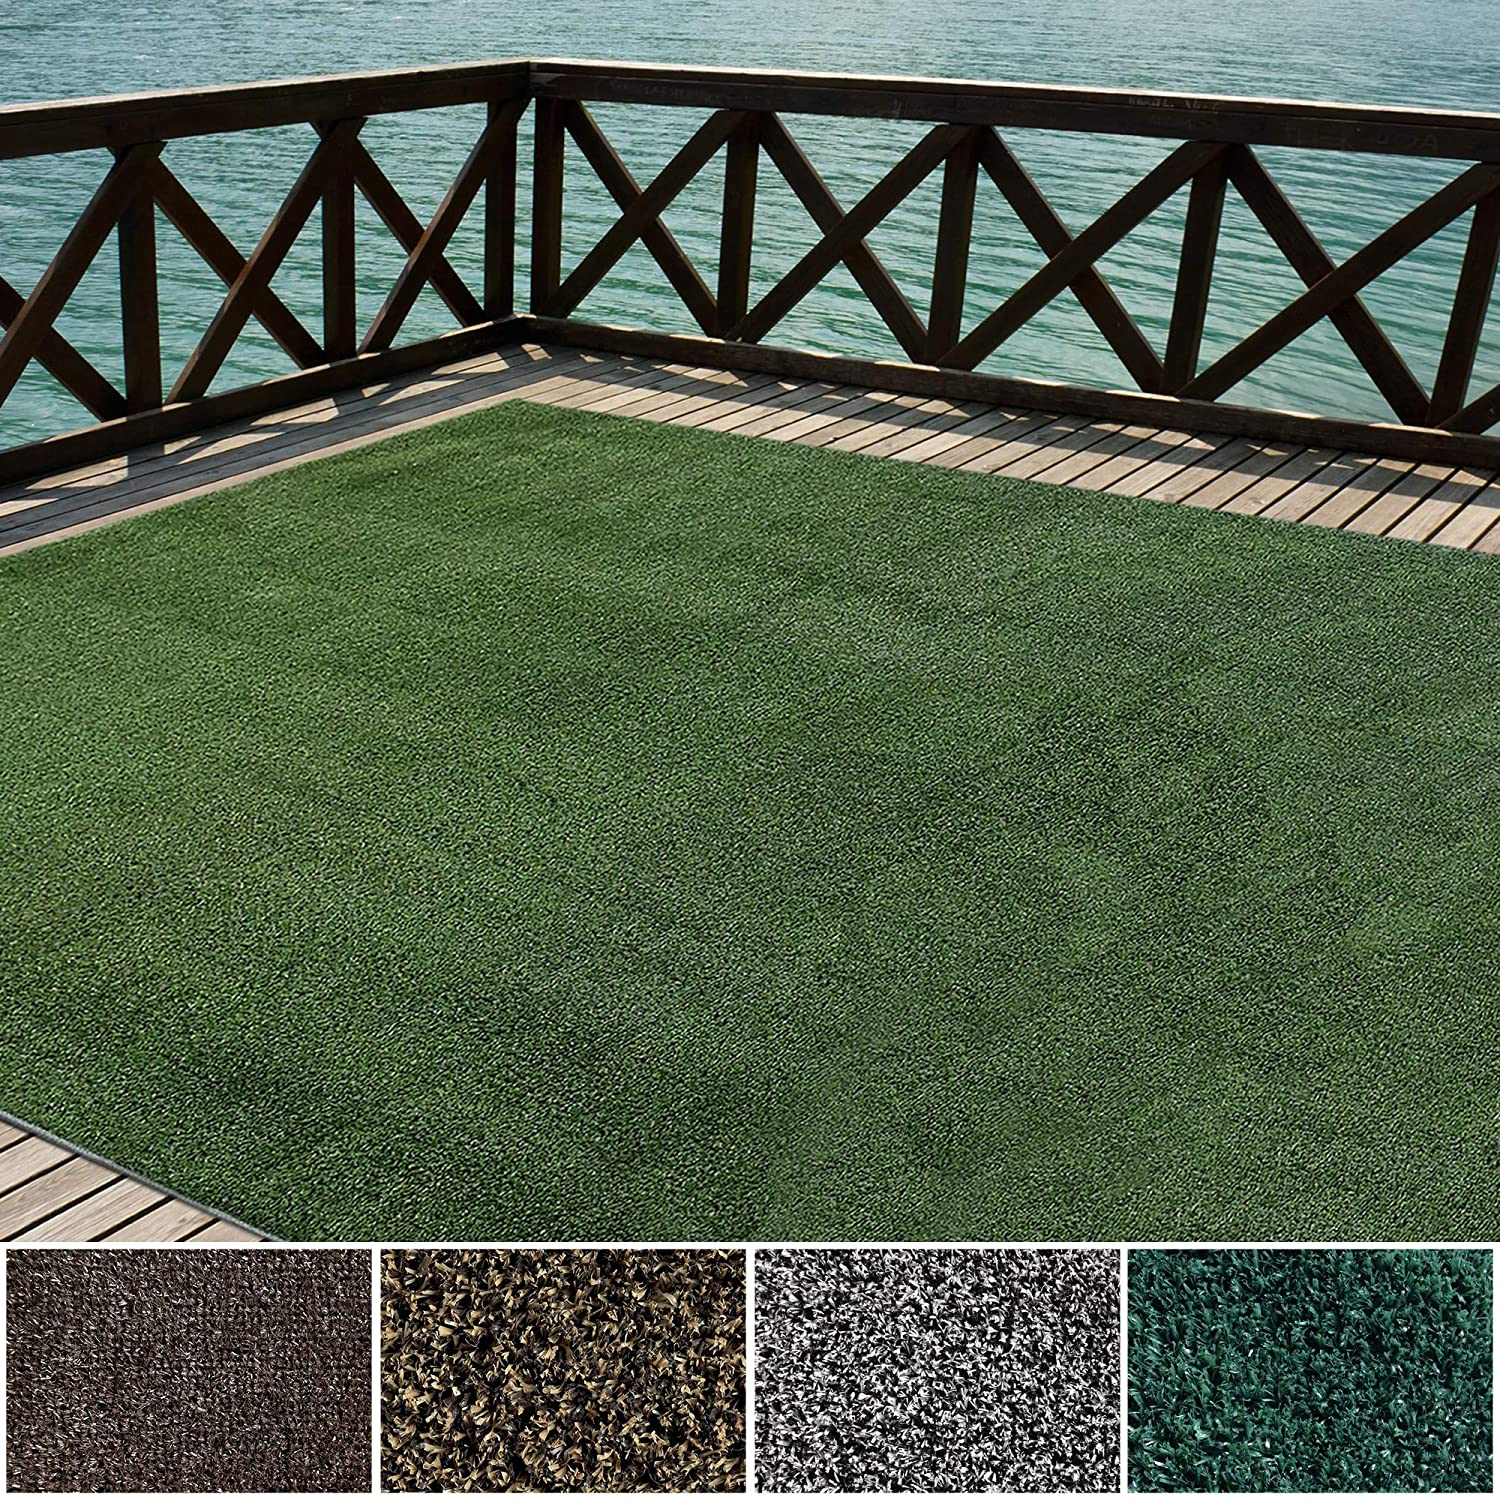 iCustomRug Indoor/Outdoor Turf Rugs and Runners Artificial Grass Many Custom Sizes and Widths Finished Edges with Binding Tape Green 12' X 16'